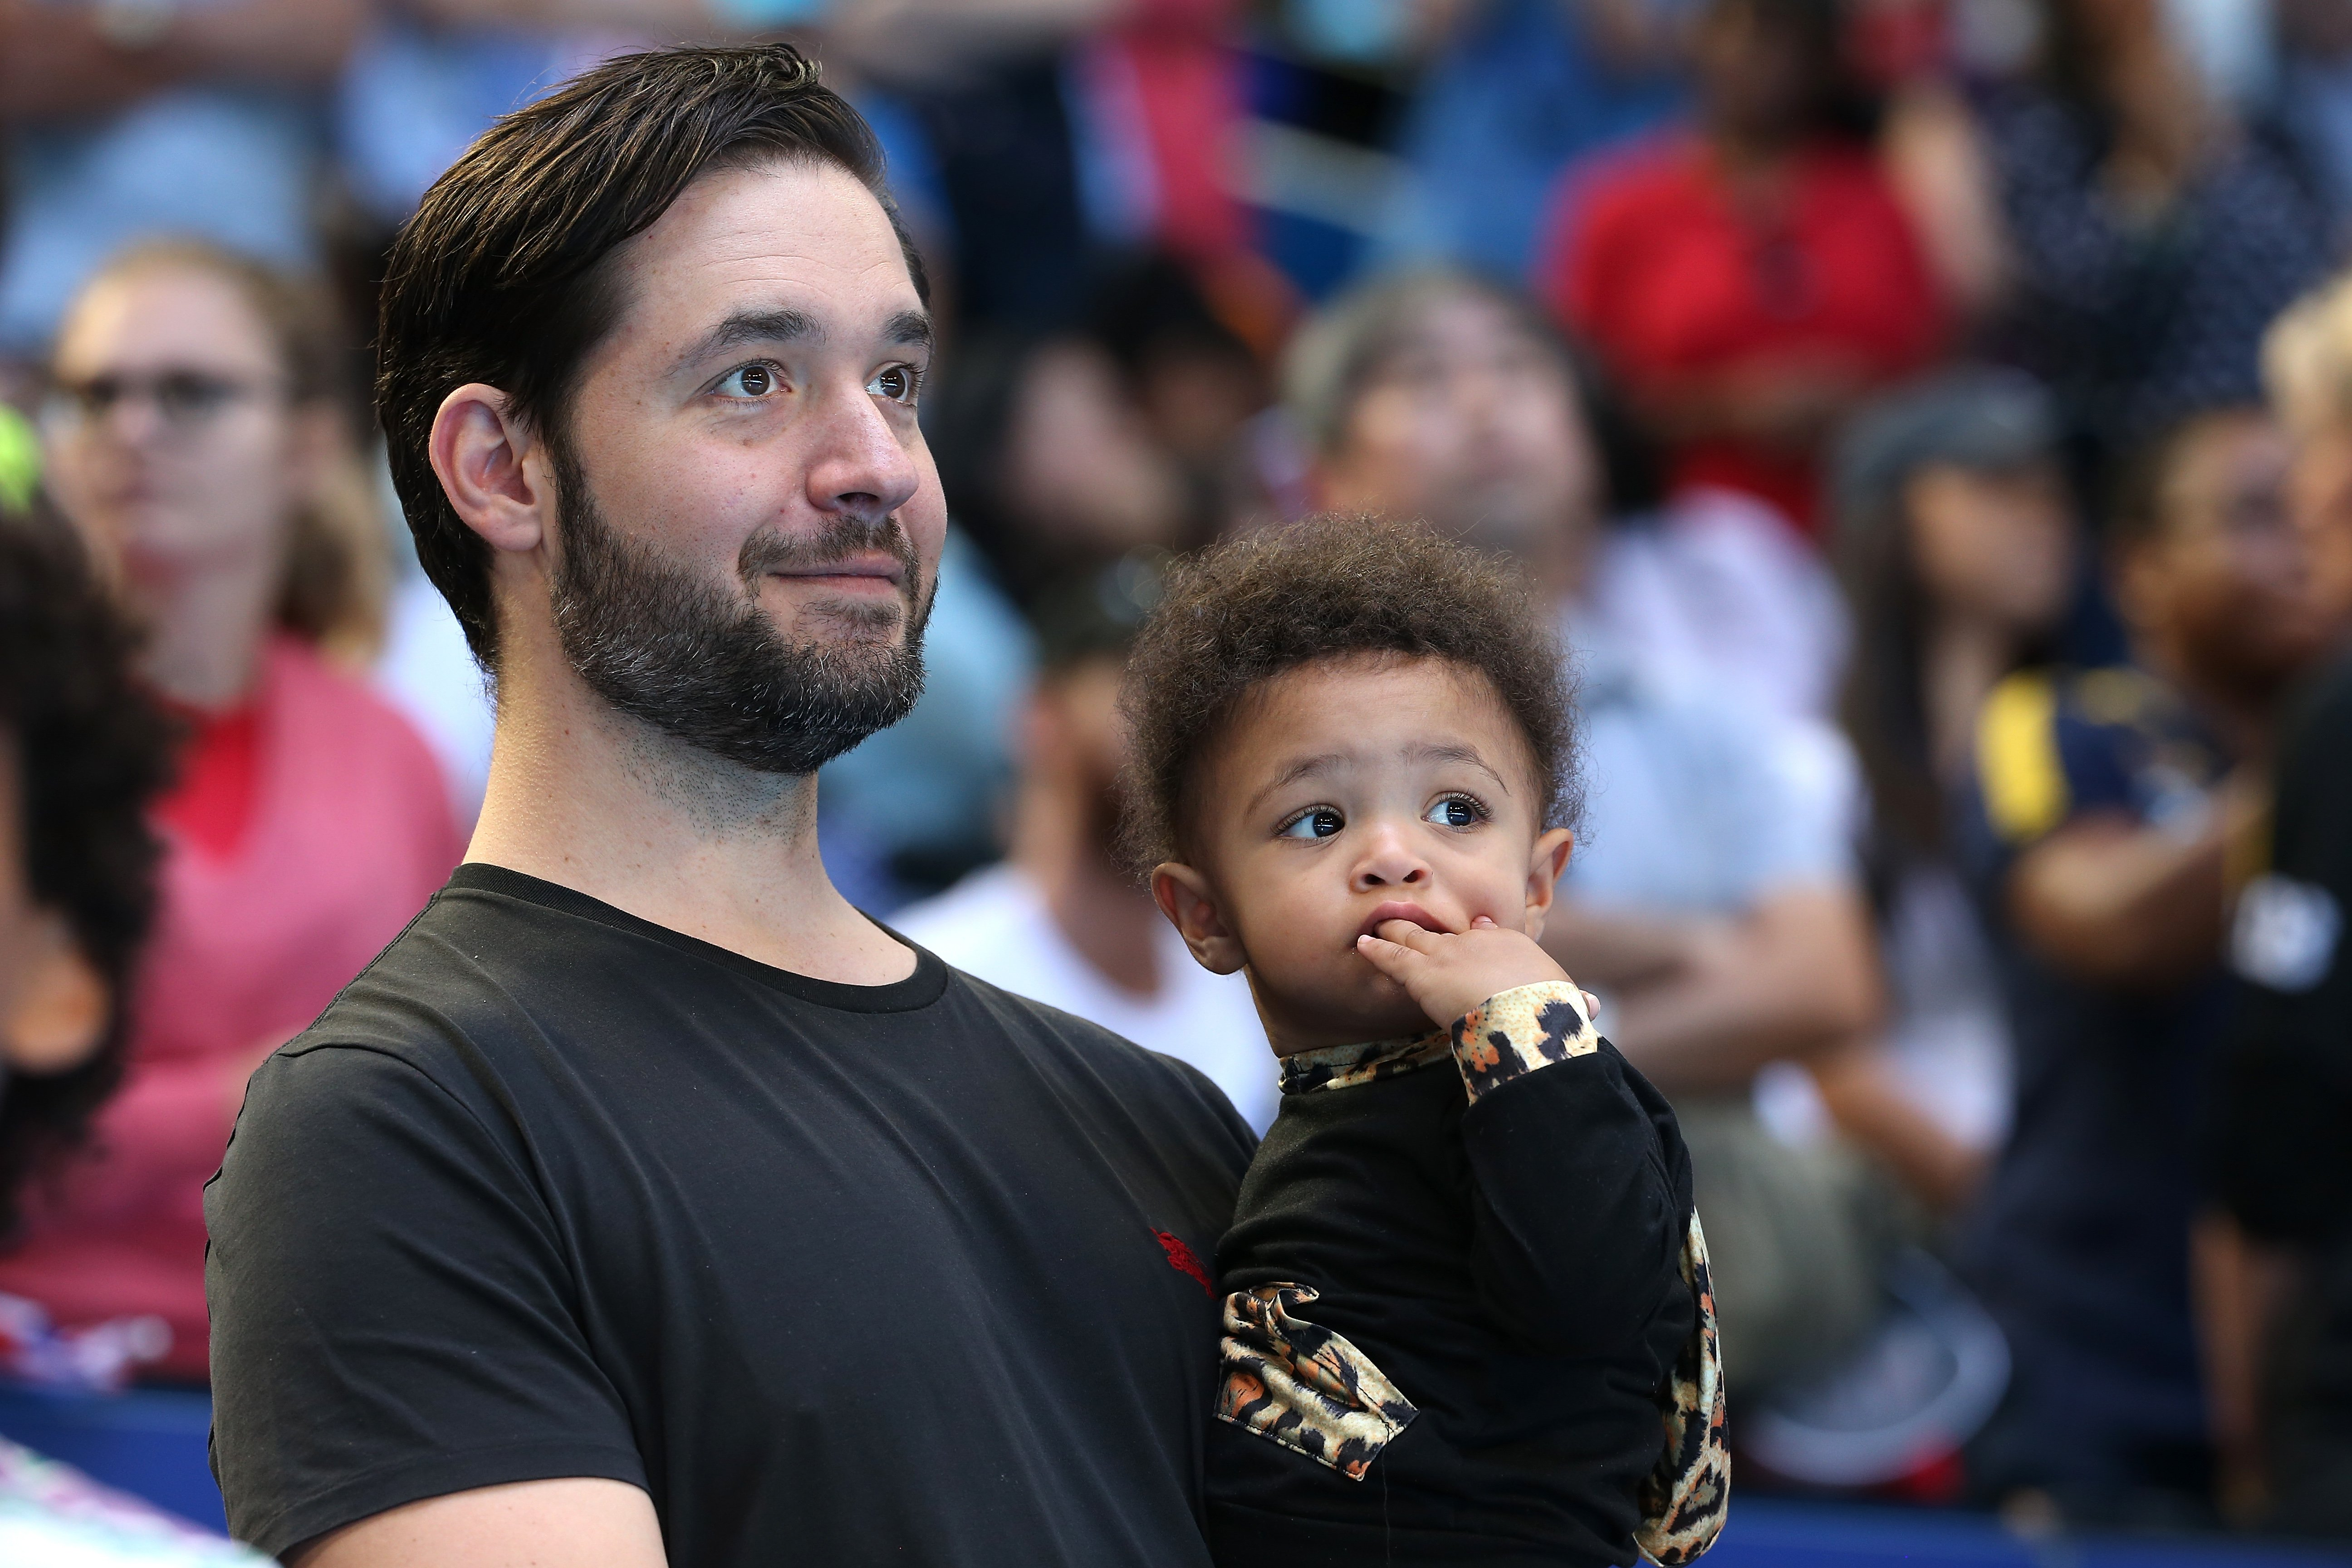 Alexis Ohanian holds Olympia Ohanian Jr. at the 2019 Hopman Cup at RAC Arena on January 03, 2019 in Perth, Australia. | Source: Getty Images